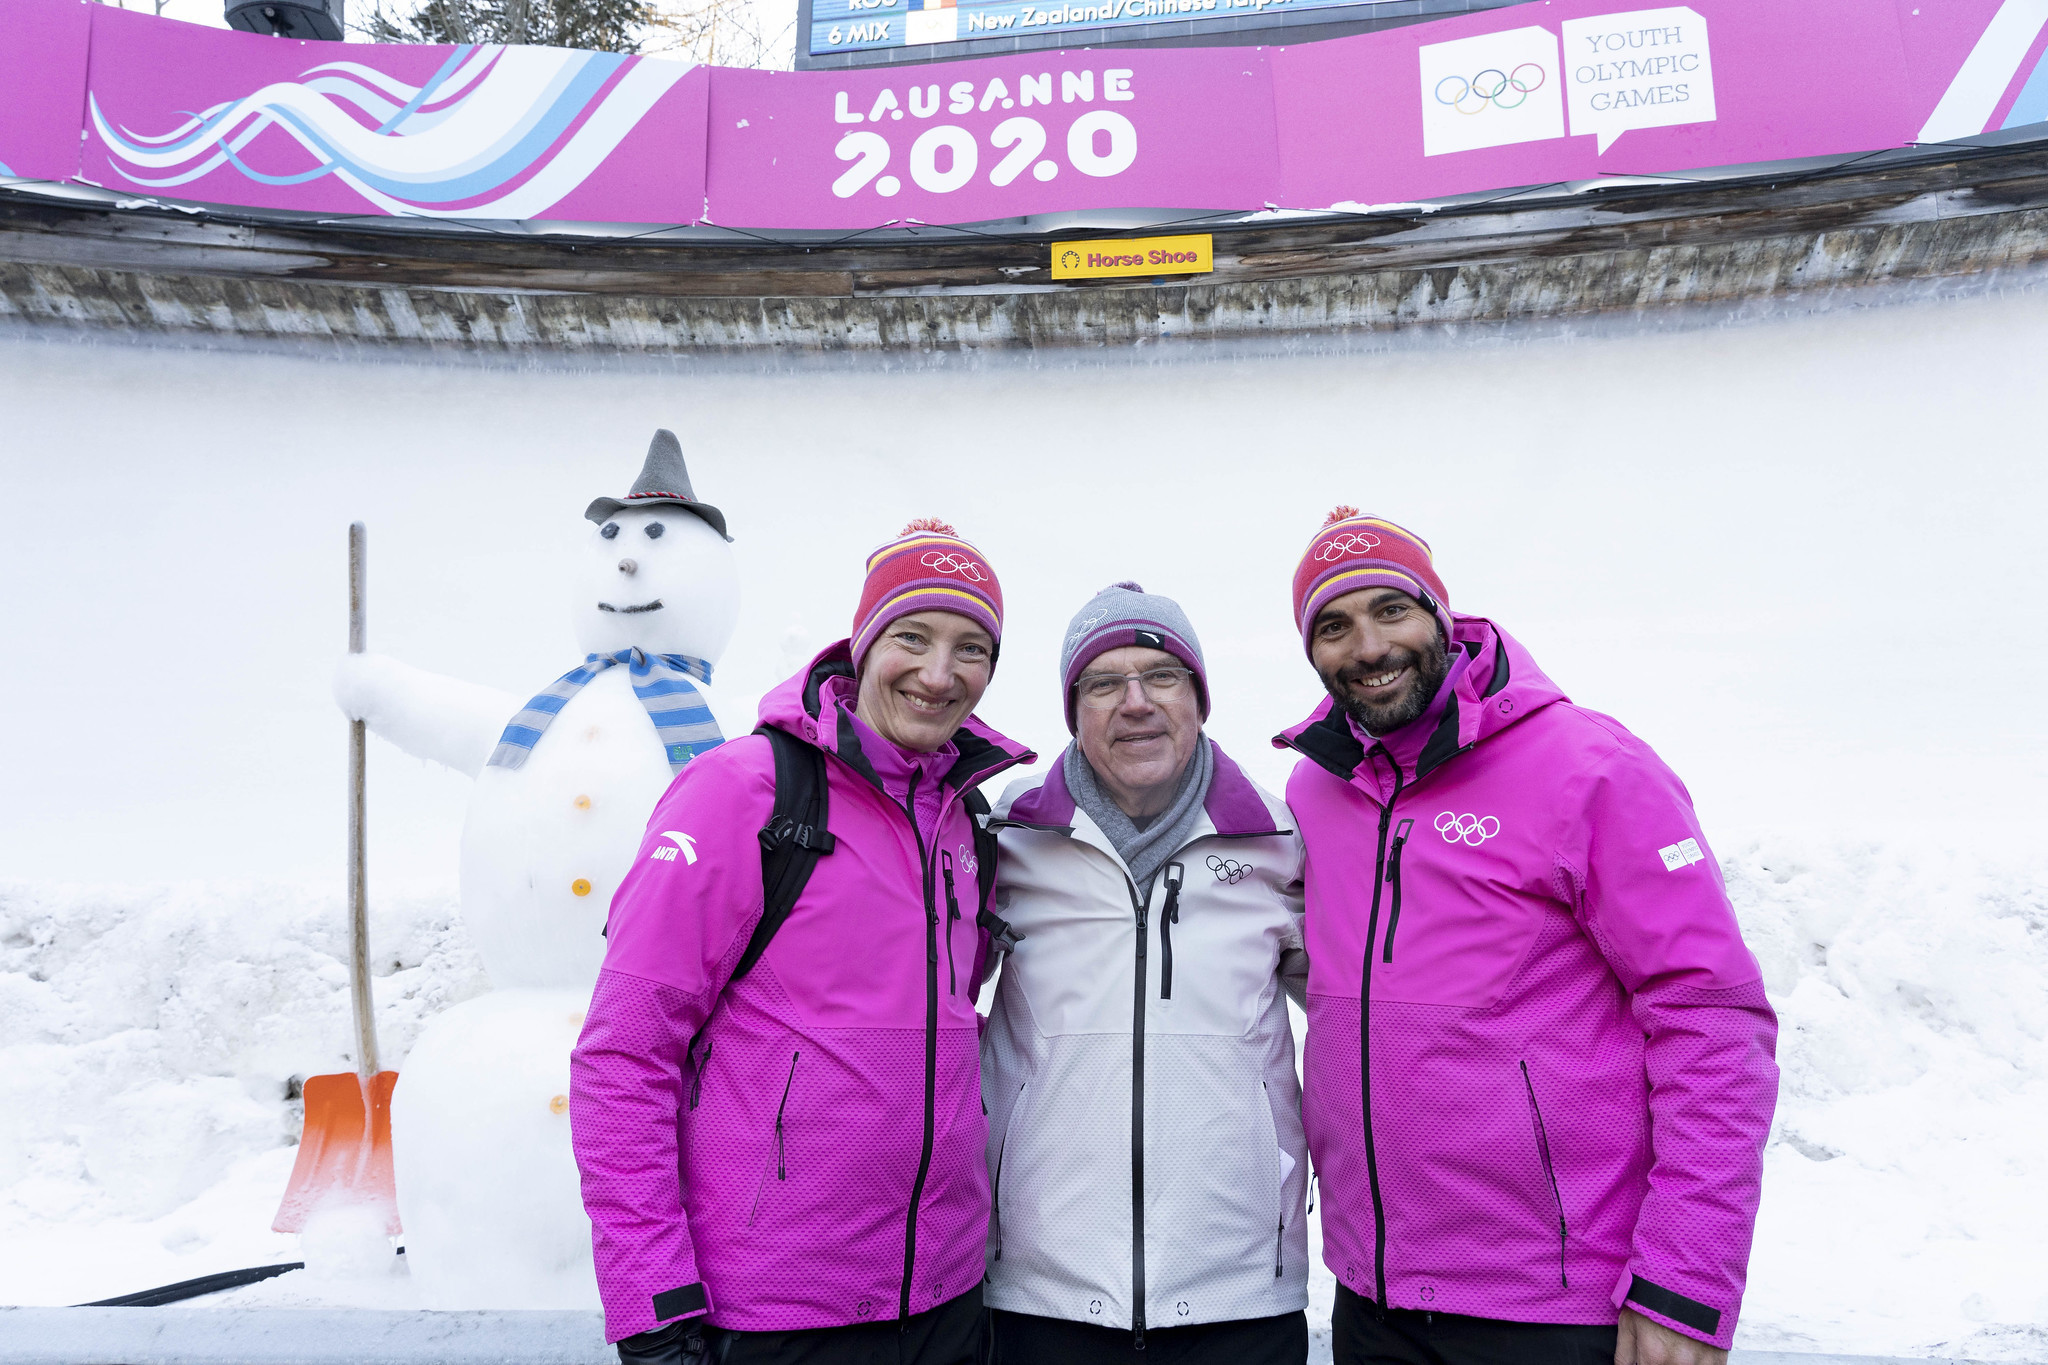 Bach claims Lausanne 2020 has changed Swiss attitude towards Olympic Games